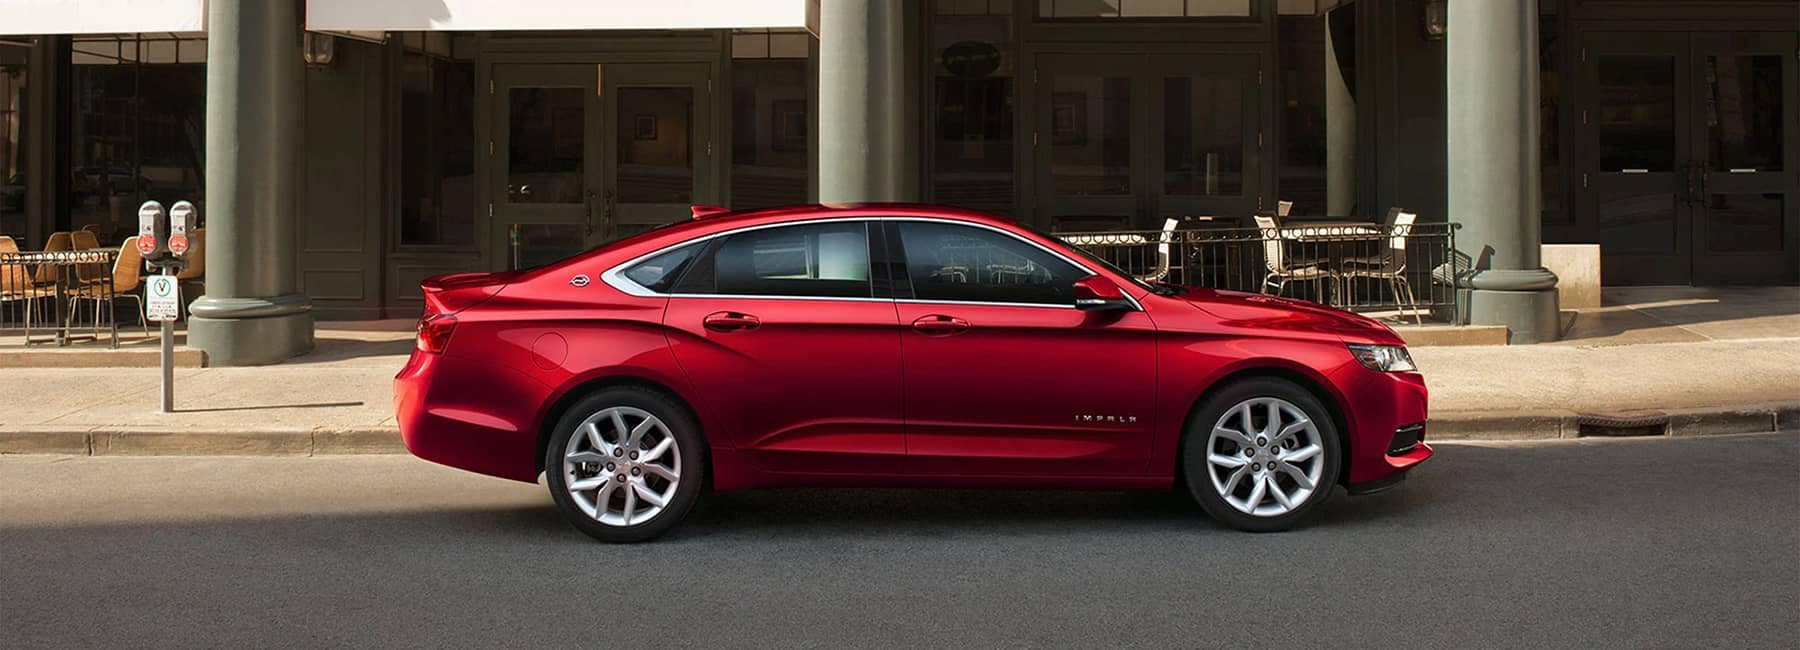 2020 Red Impala Full-Size Car Exterior Side Profile